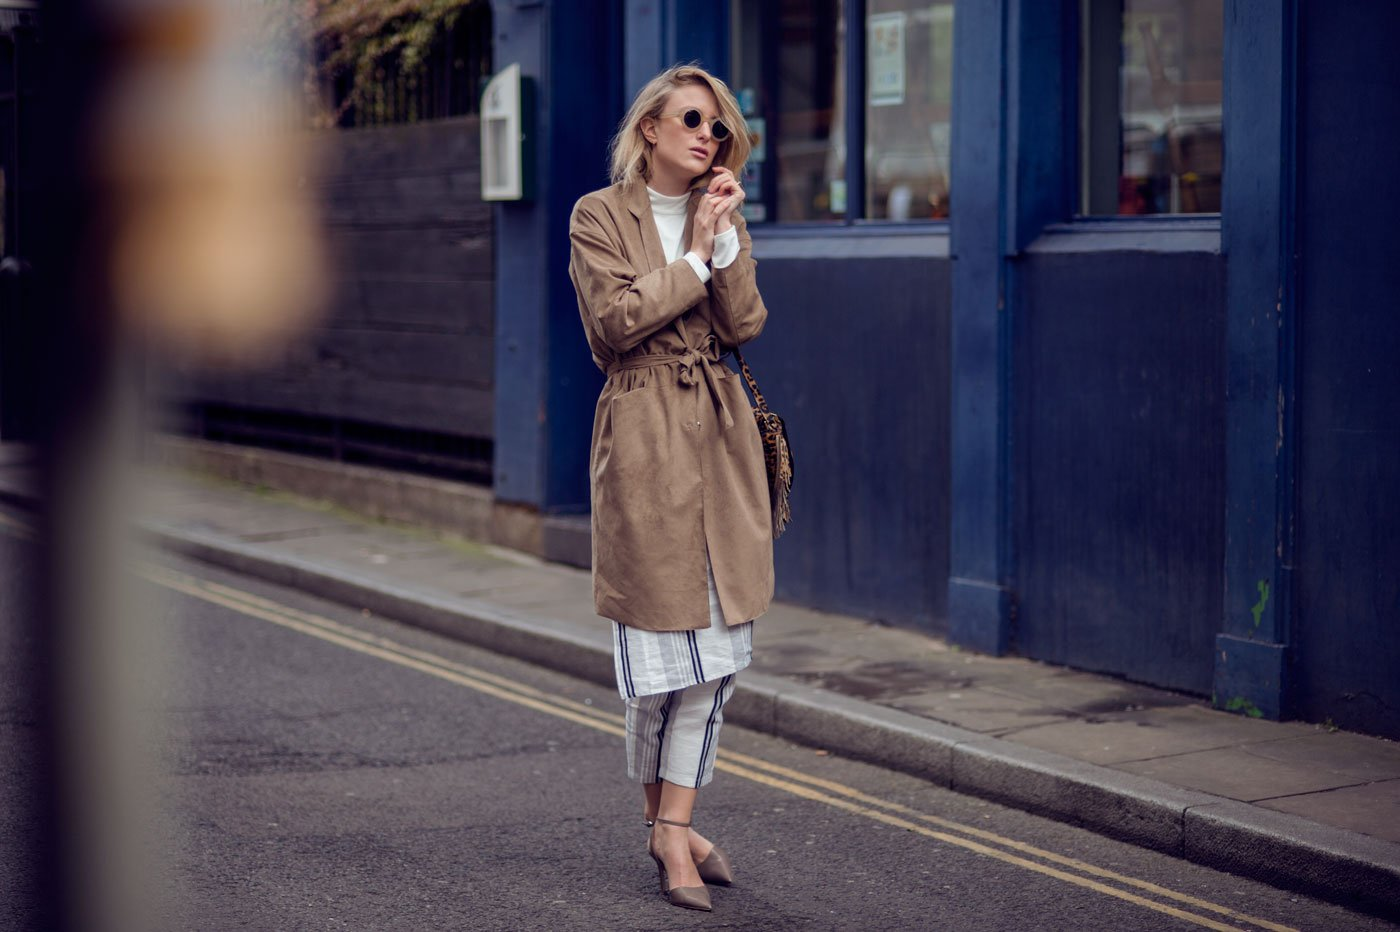 filippa k suede coat 70s